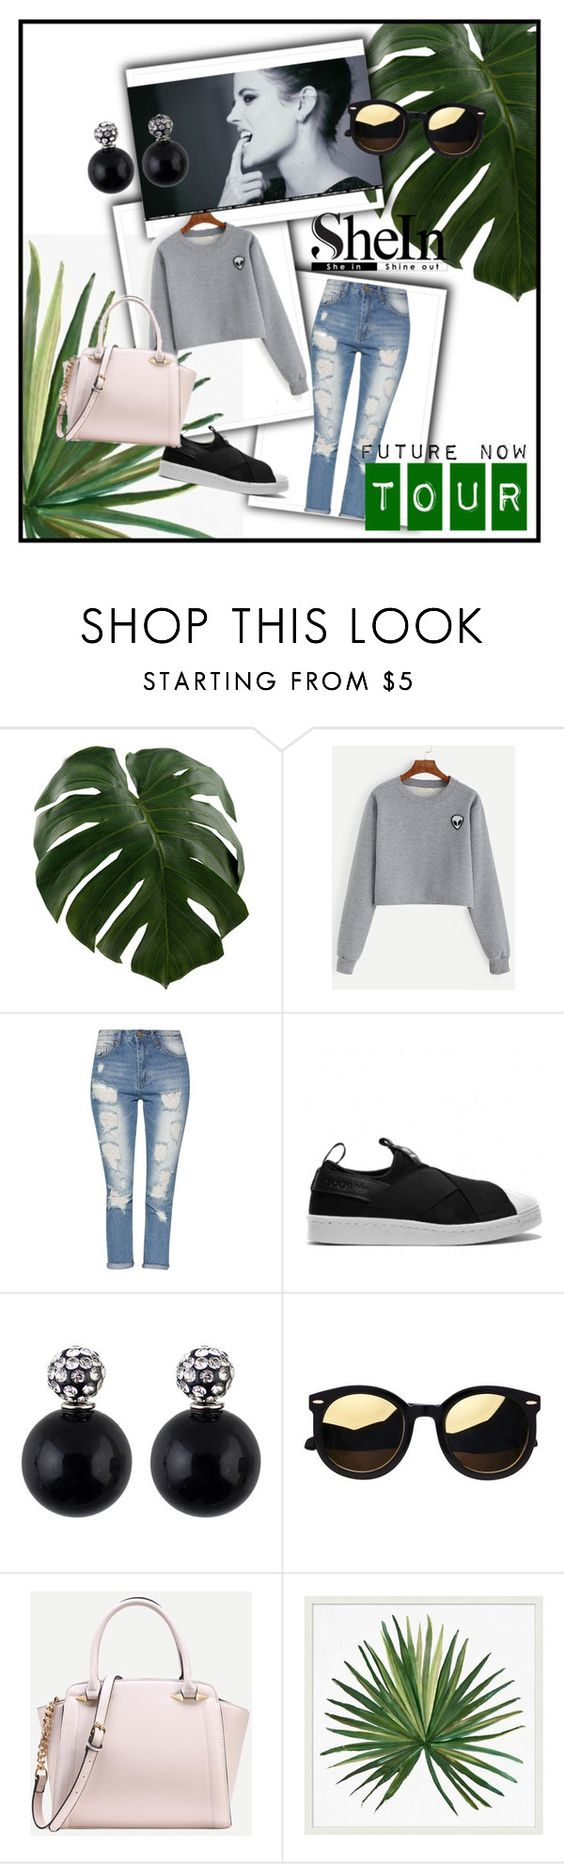 """Style Up"" by tainted-scars ❤ liked on Polyvore featuring Pottery Barn"